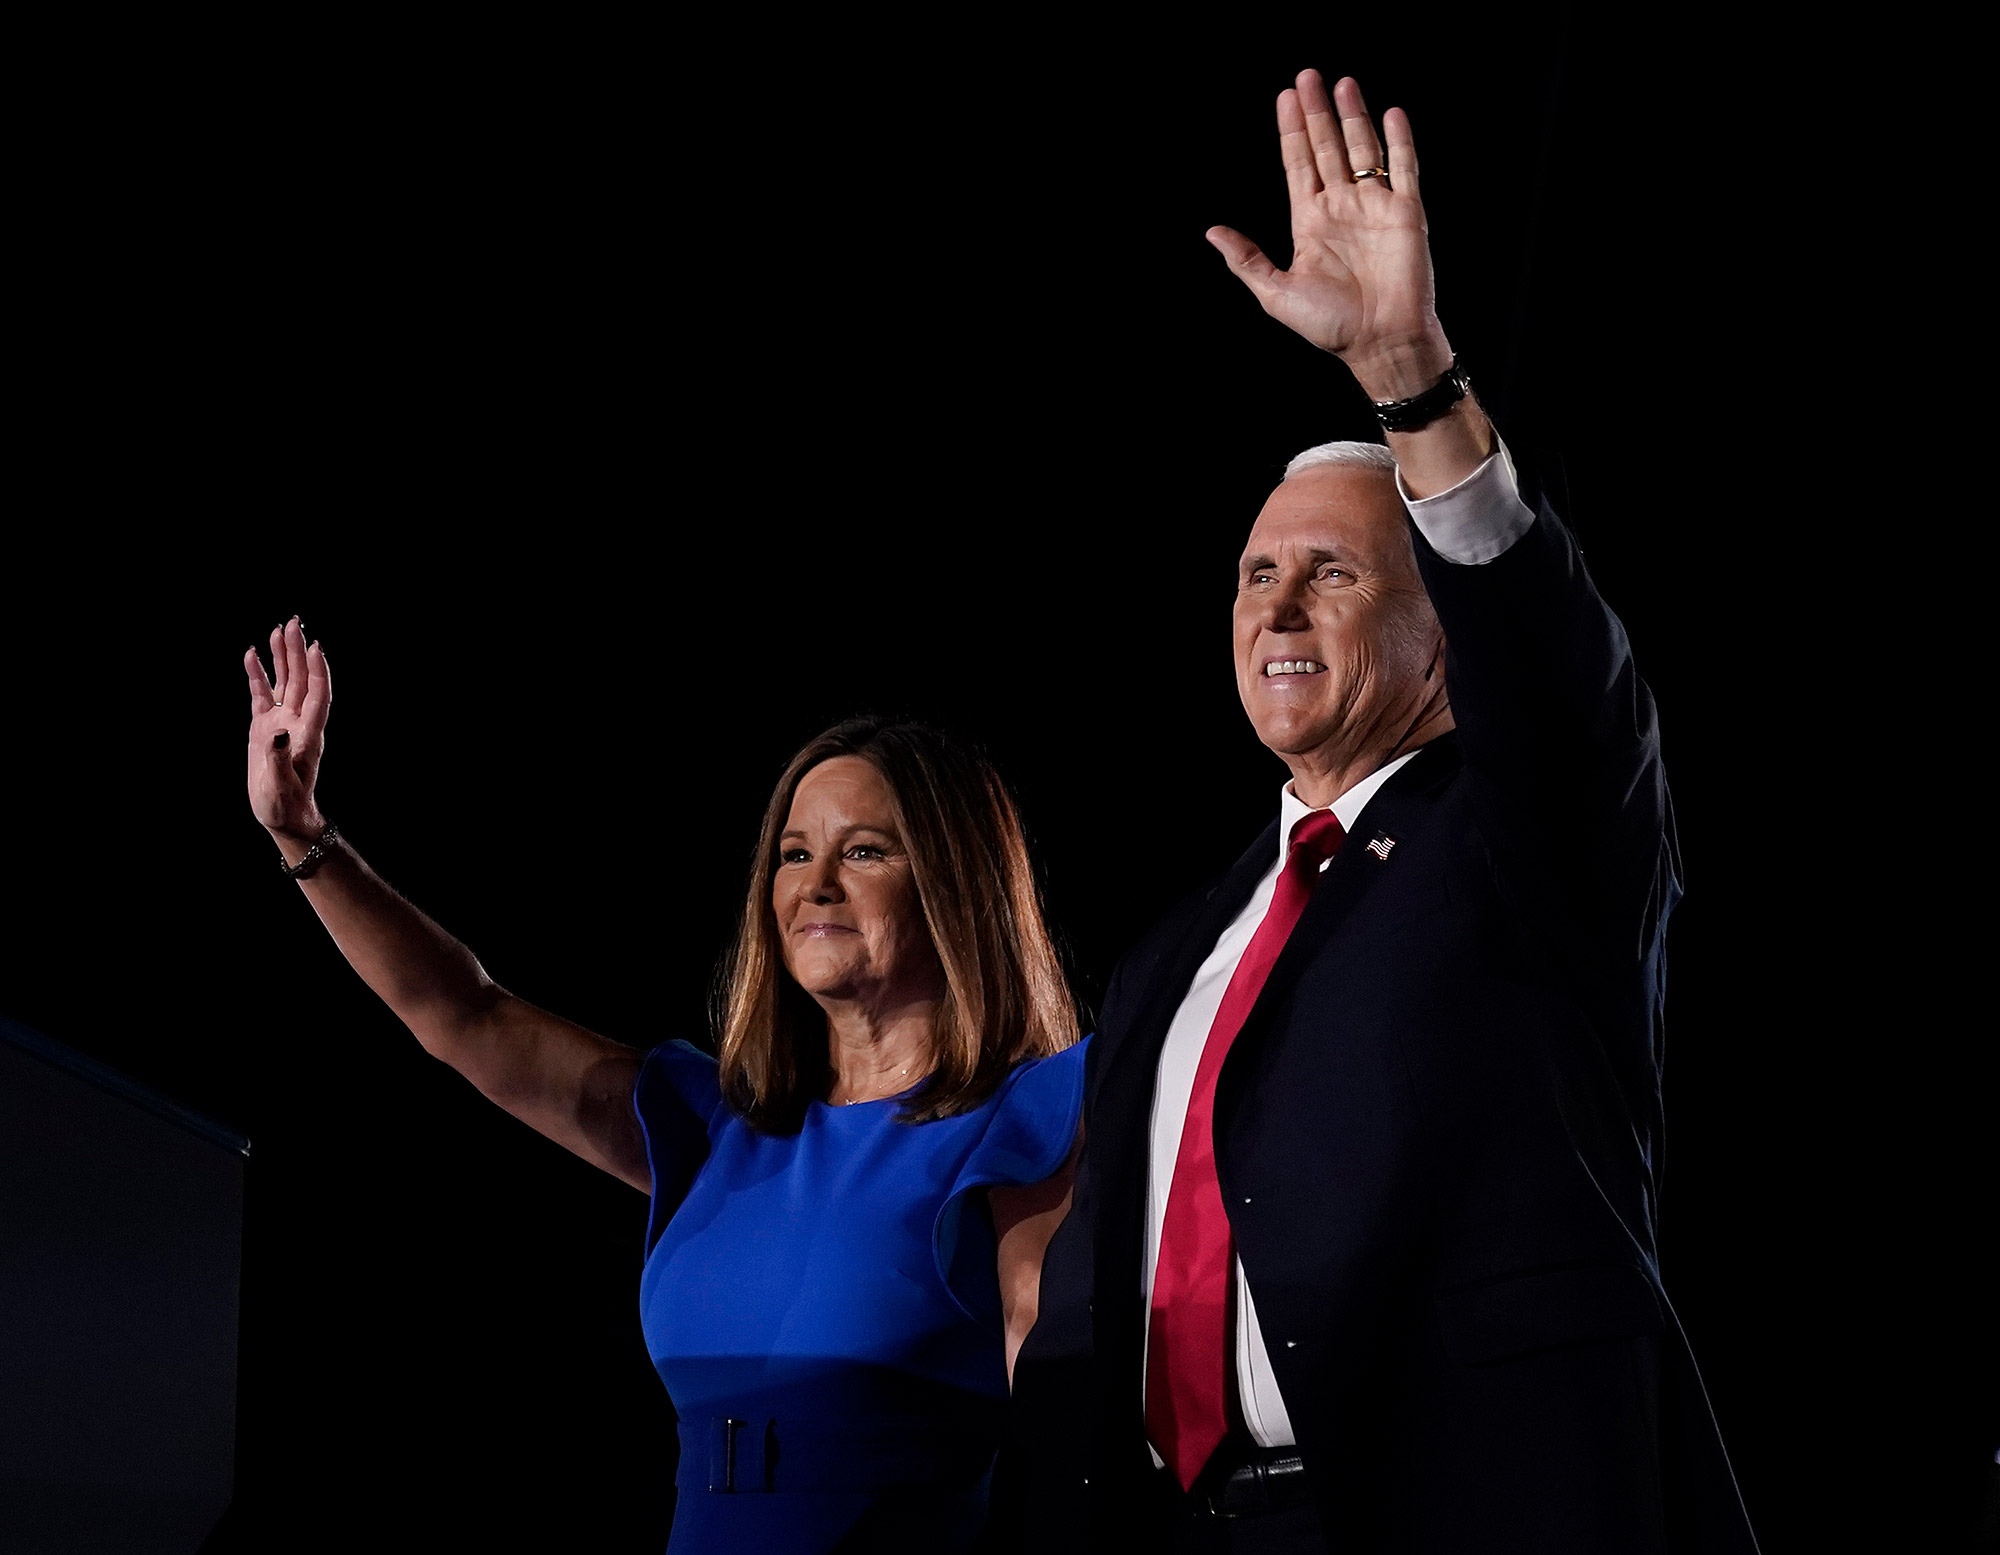 Vice President Mike Pence and second lady Karen Pence attend the Republican National Convention on August 26 in Baltimore, Maryland.